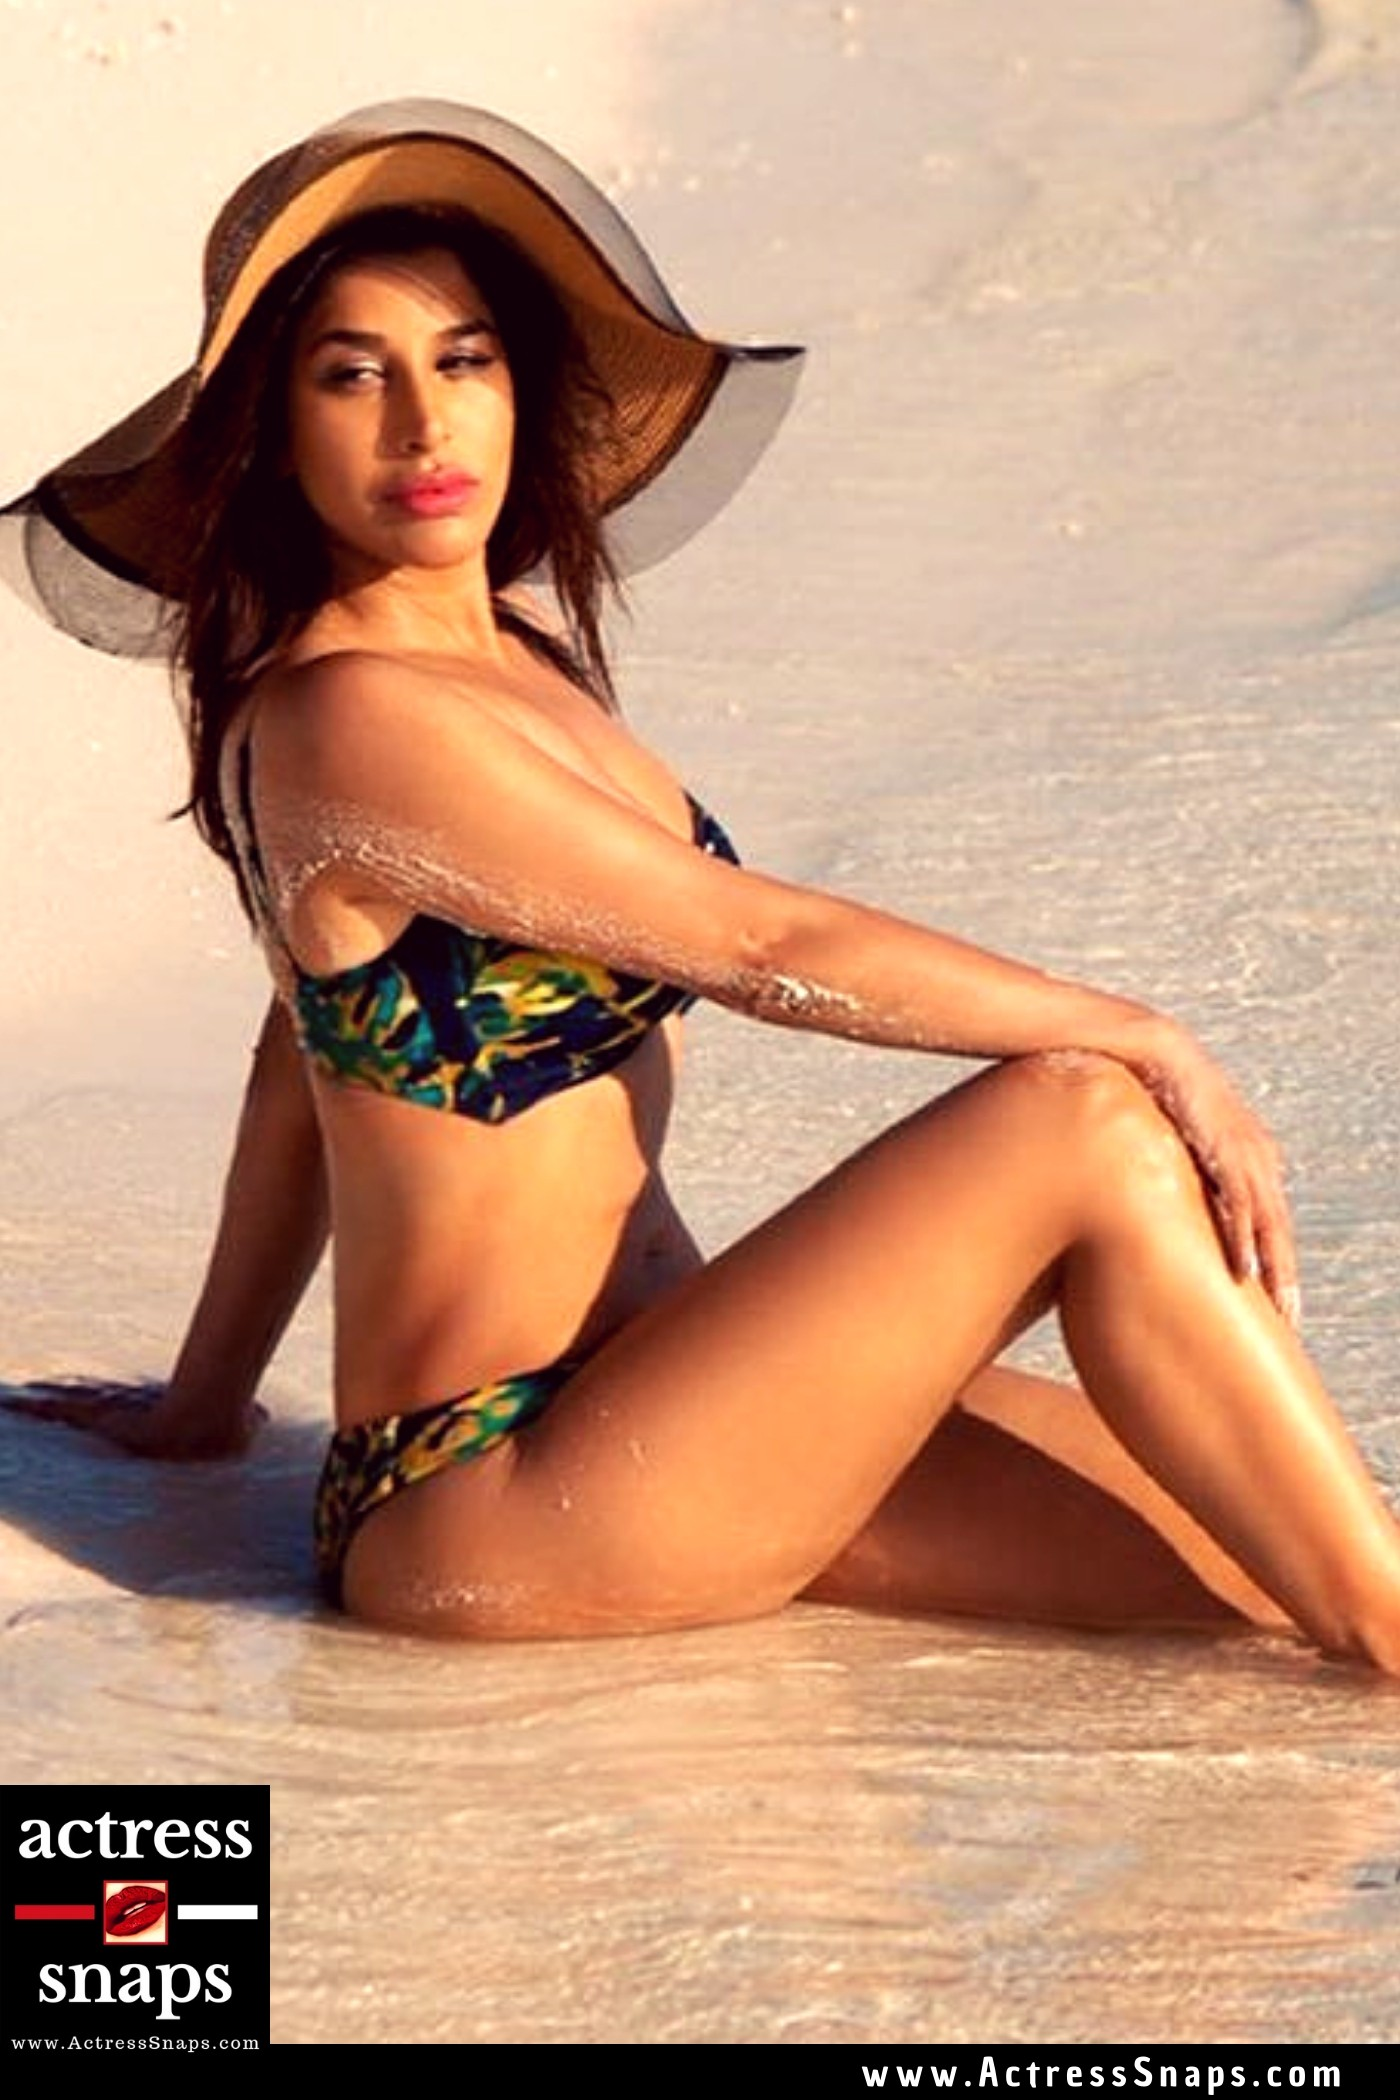 Sexy Sophie Choudry Bikini Pics - Sexy Actress Pictures   Hot Actress Pictures - ActressSnaps.com